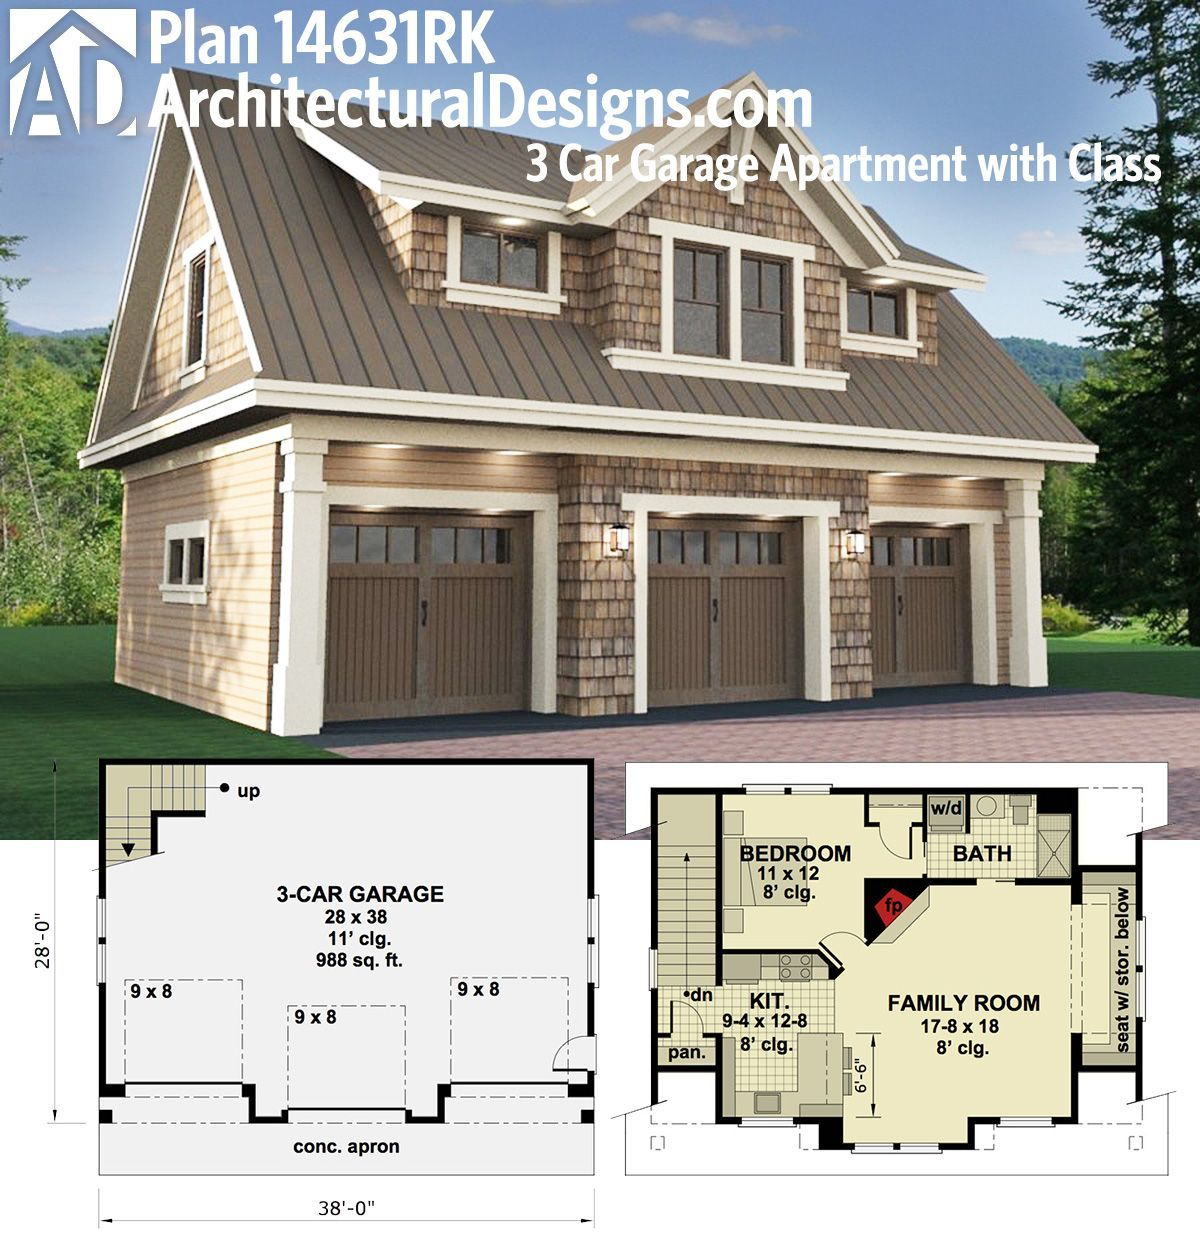 Plan 14631rk 3 Car Garage Apartment With Class Carriage House